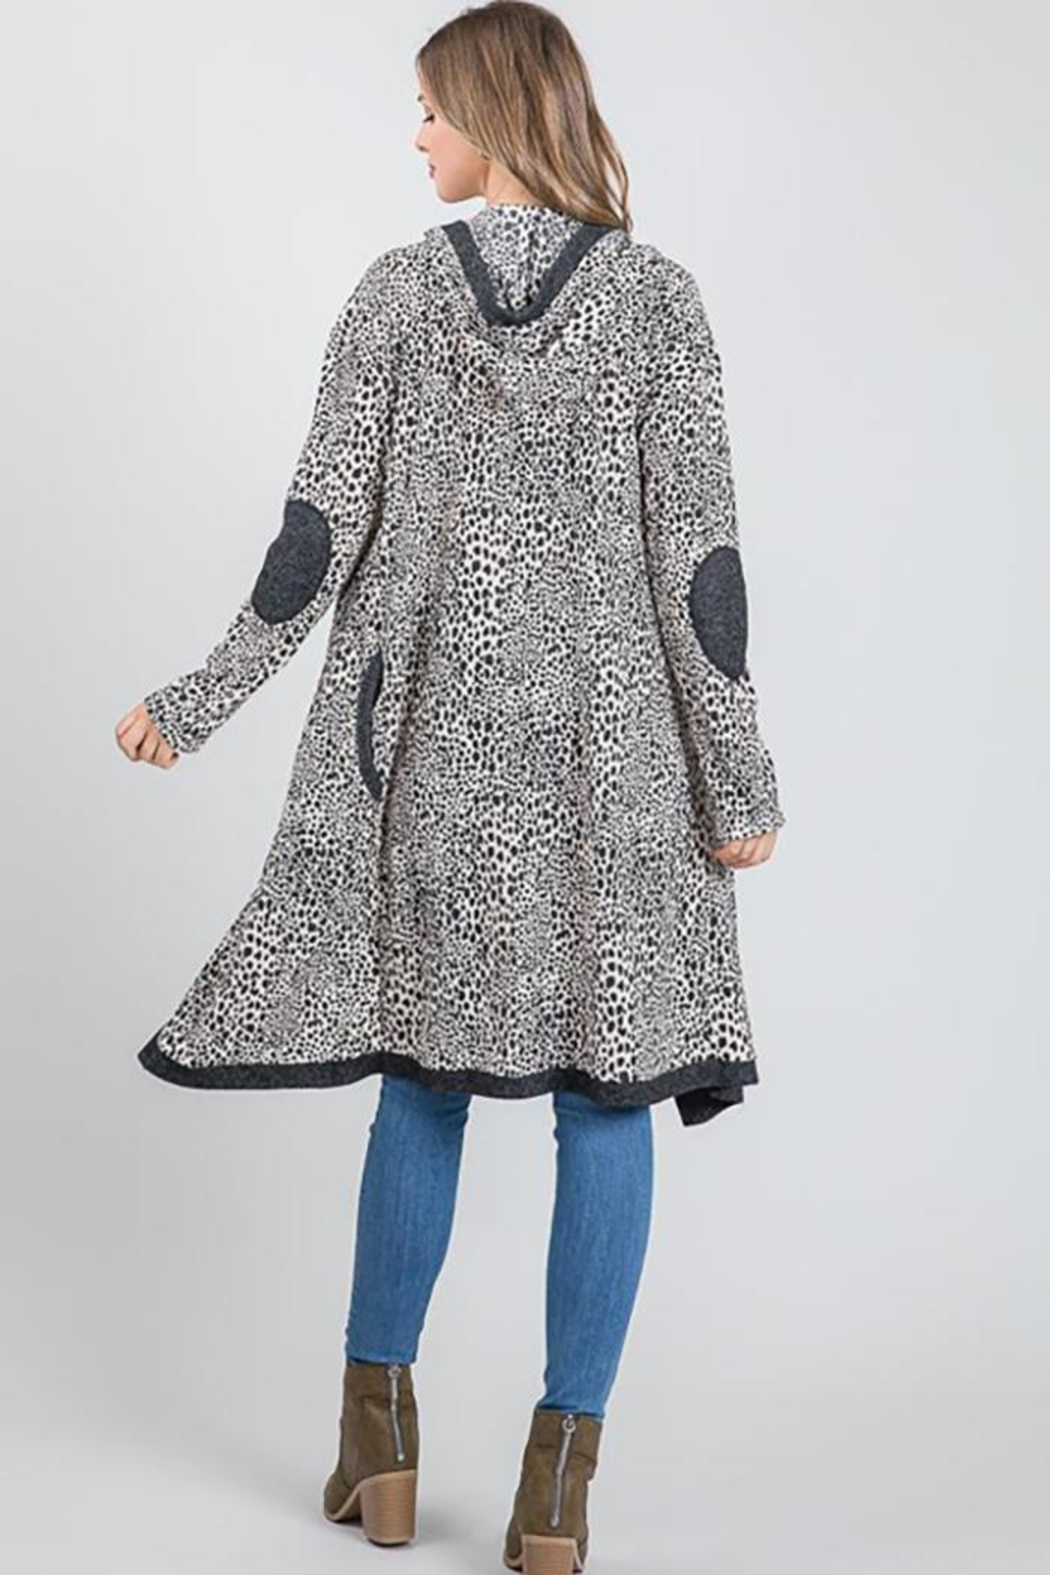 Nadya's Closet Long Sleeve Open Front Hooded Cardigan Sweater - Side Cropped Image